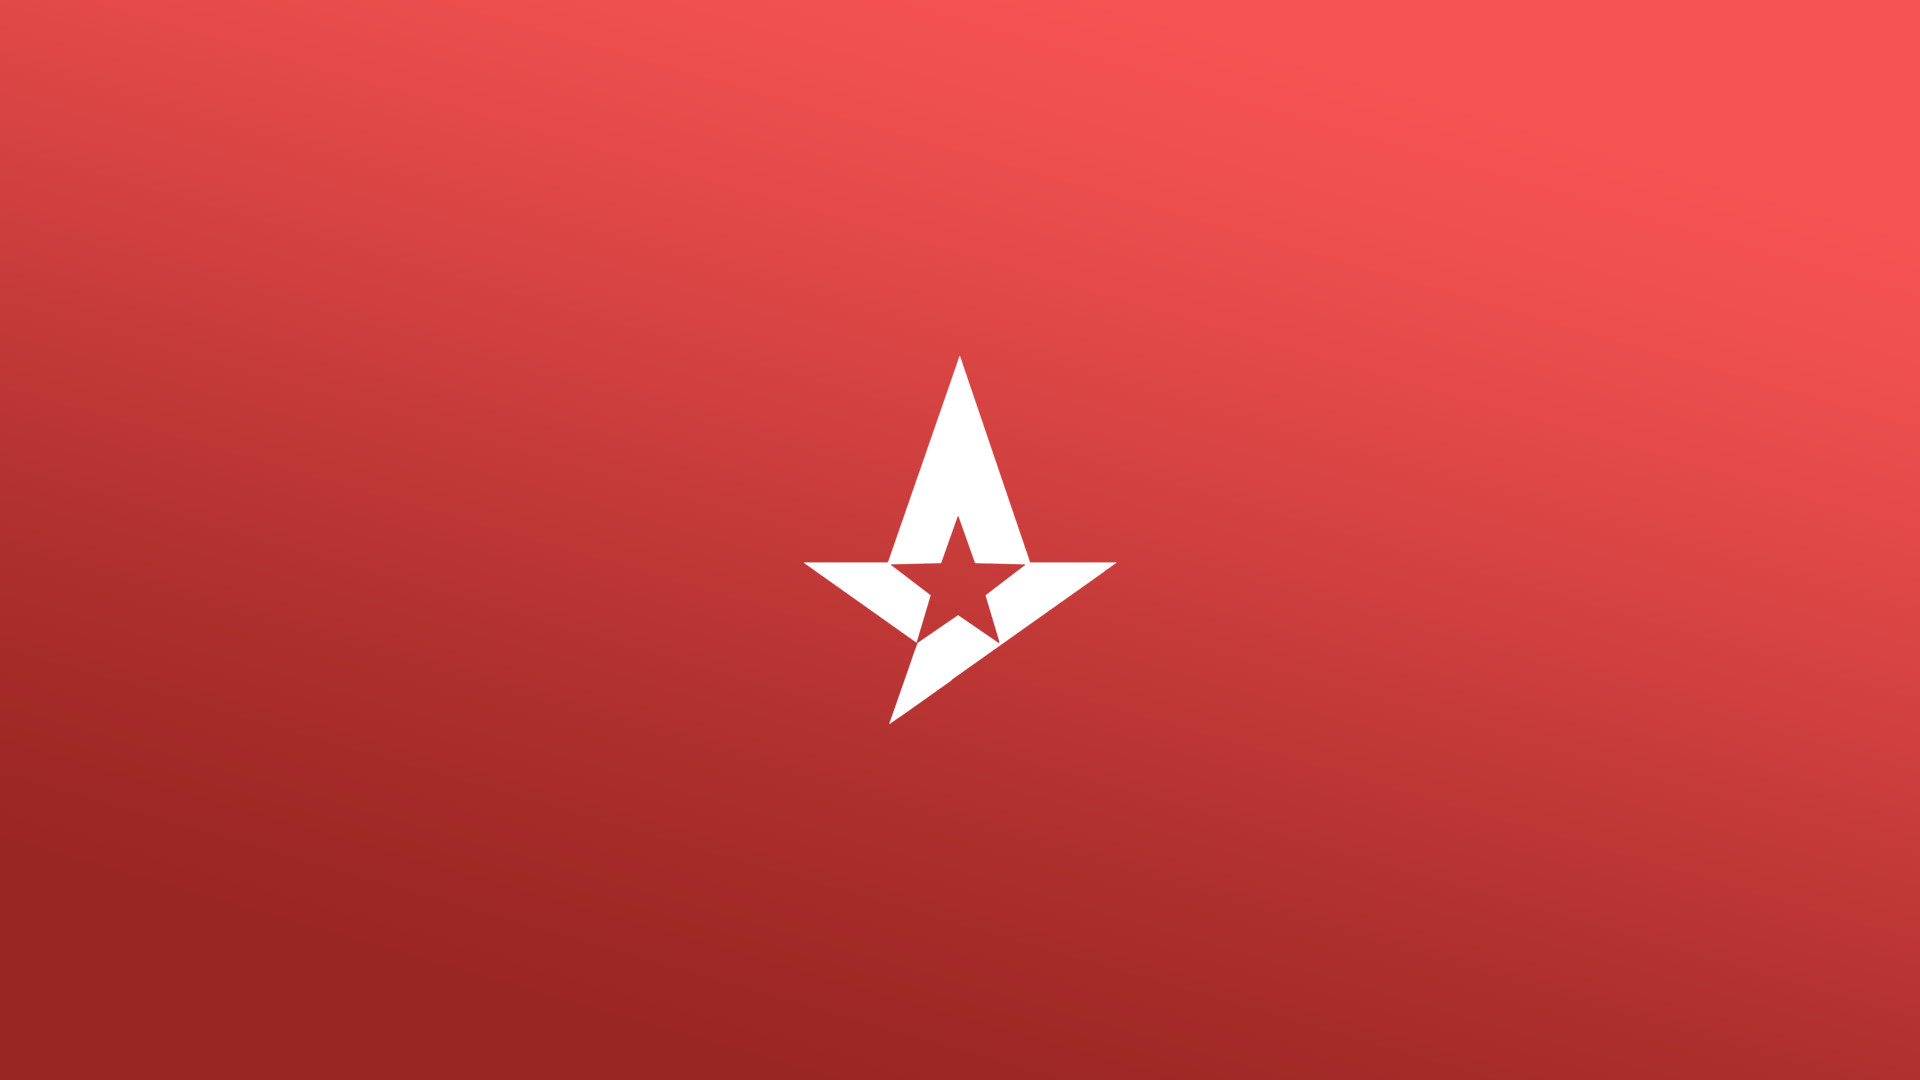 1920x1080 Astralis are a Danish organisation specialising in CSGO created by the  players. Here are some cool Astralis wallpapers that you can download and  set as your ...